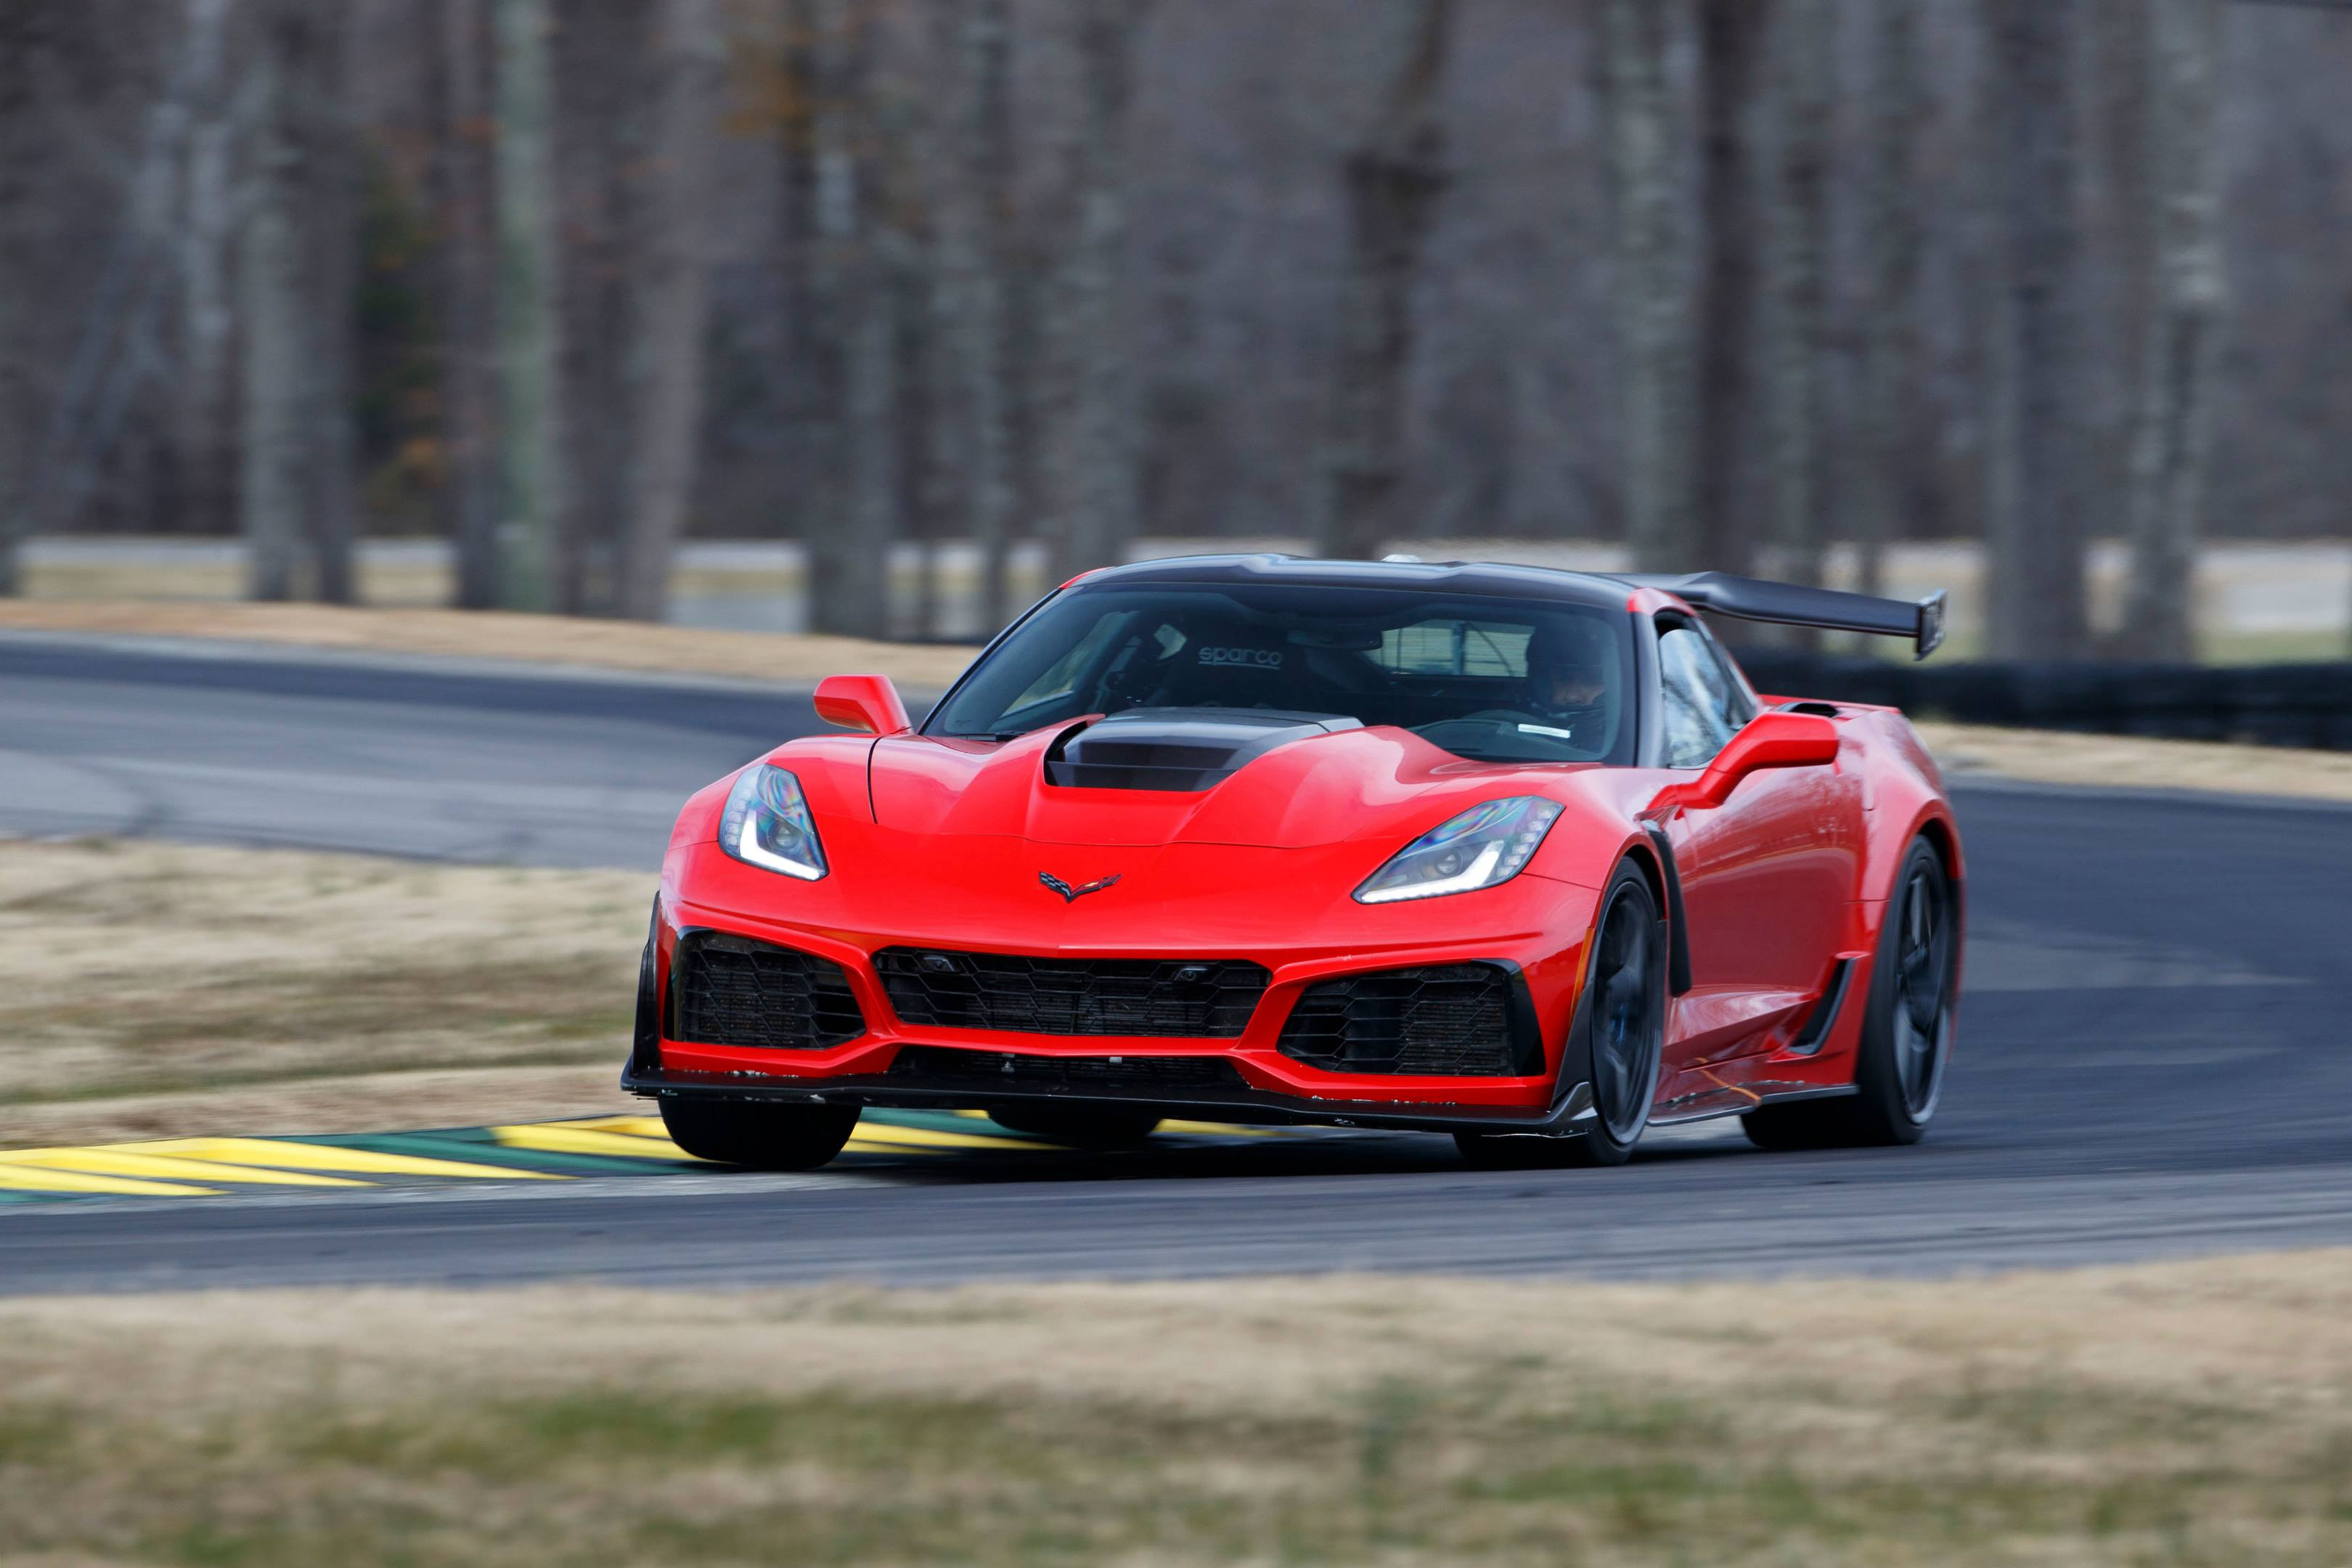 2019 Corvette ZR1 dethrones Ford GT with production car lap record at VIR thumbnail